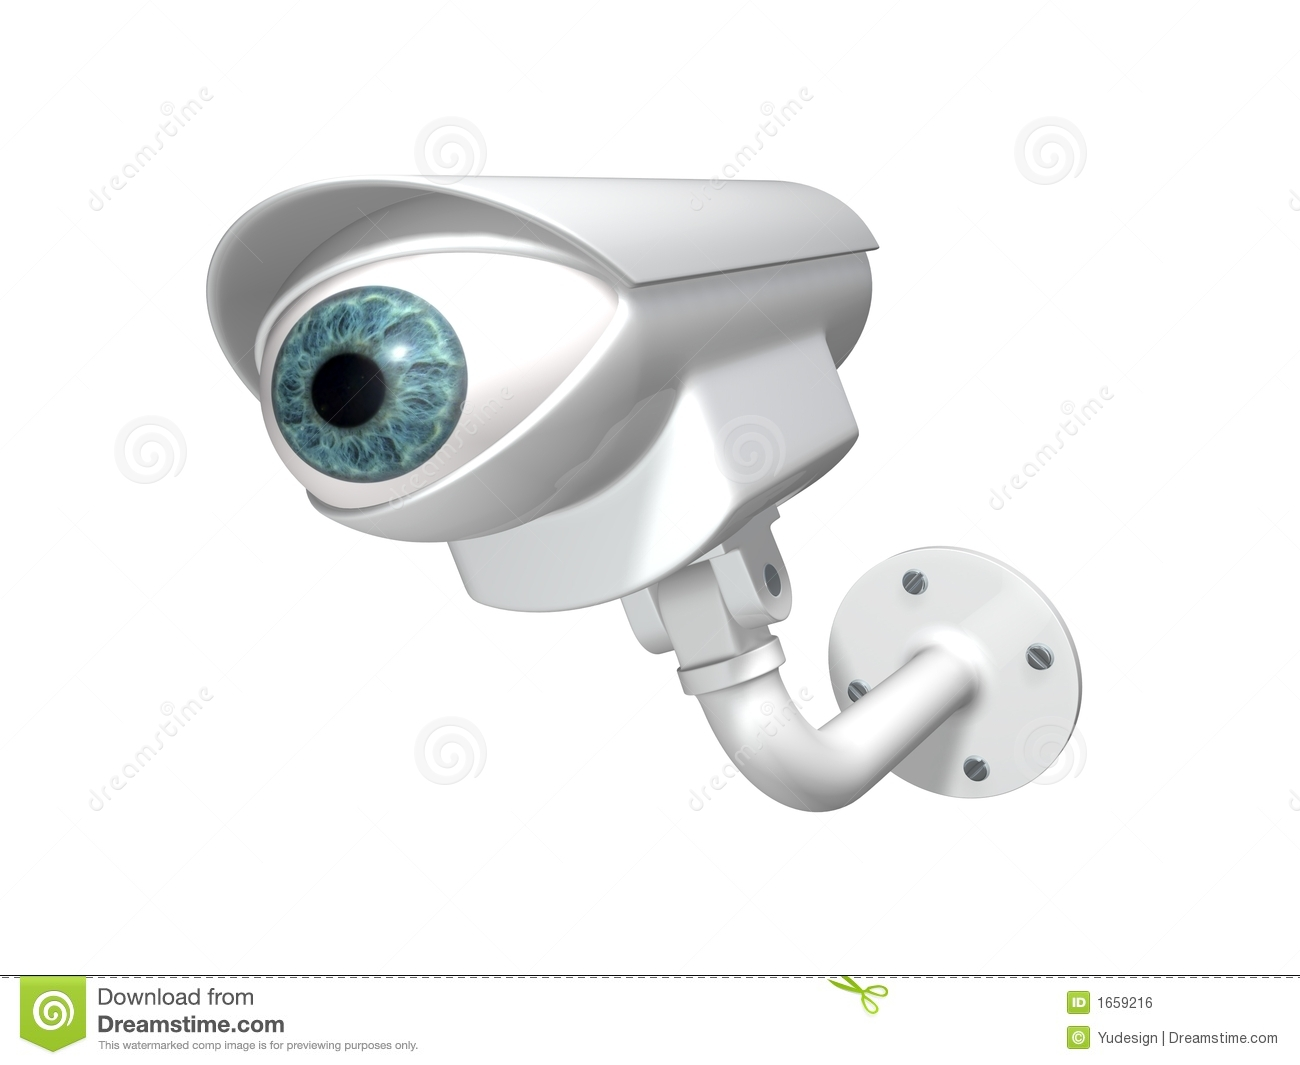 Big brother camera security app for iphone free download big.